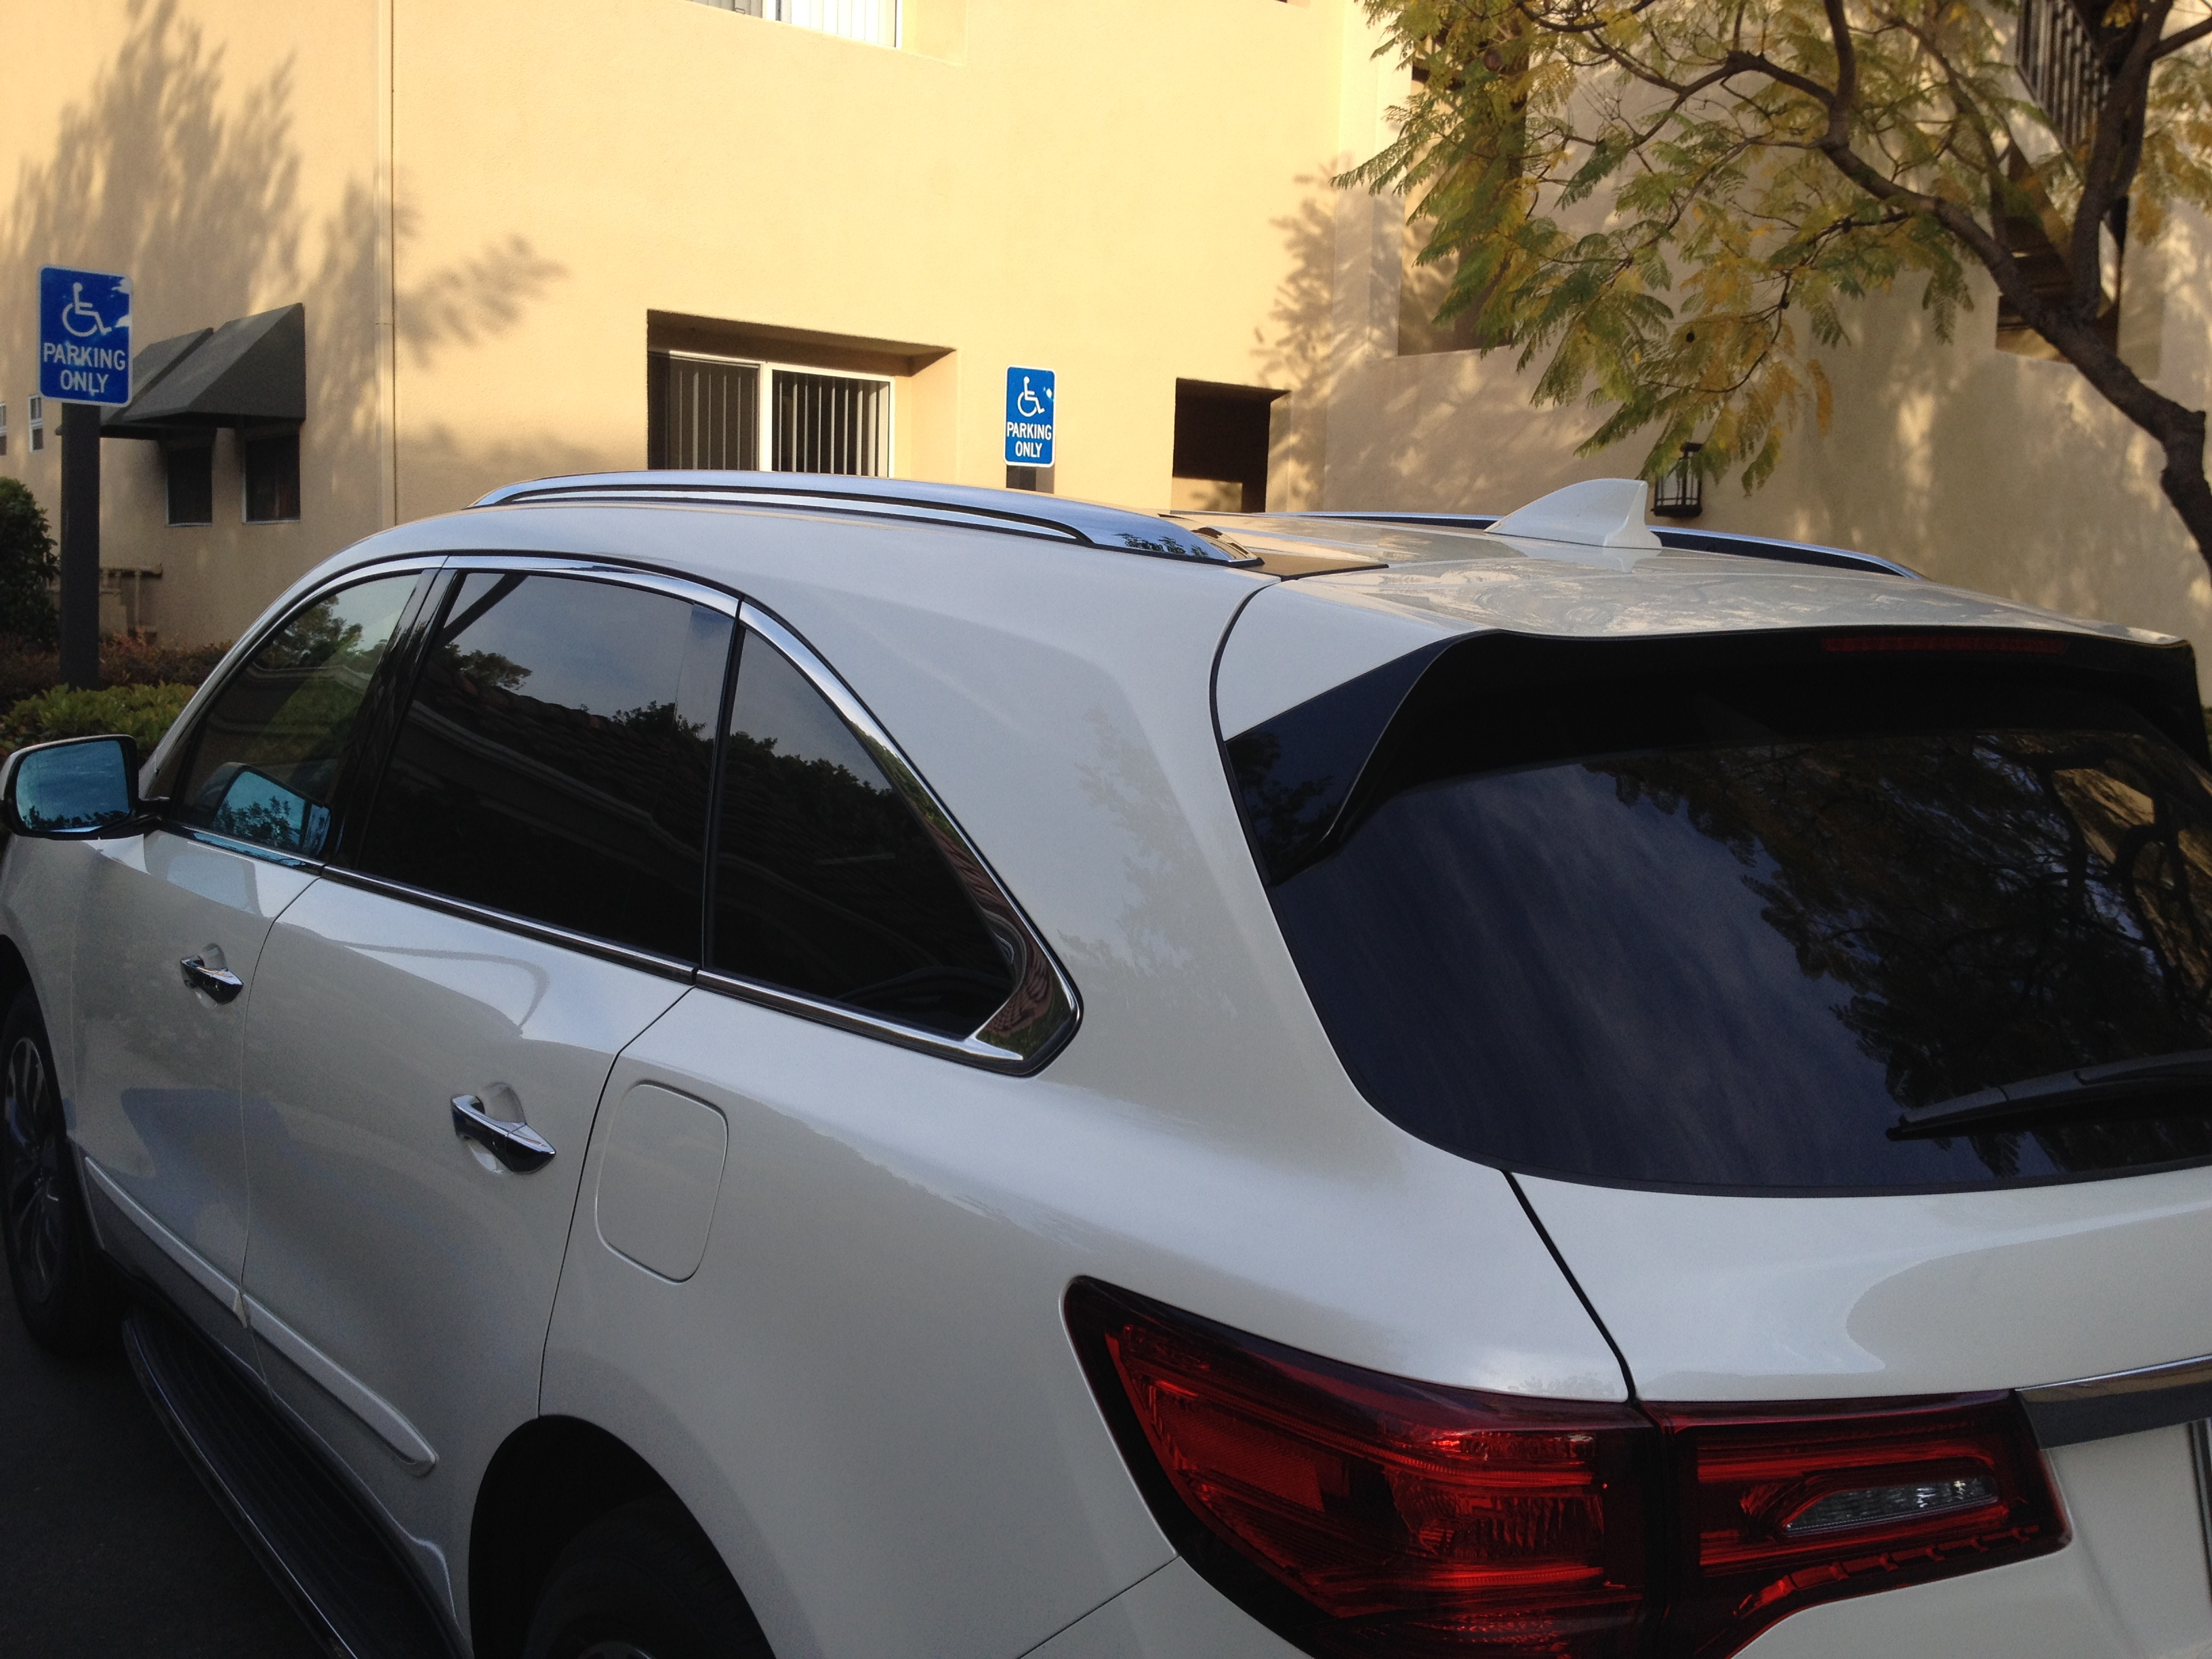 2014 mdx roof rack self install page 3 acura mdx forum acura rh mdxers org RDX Roof Rack Bike Acura RDX Running Boards